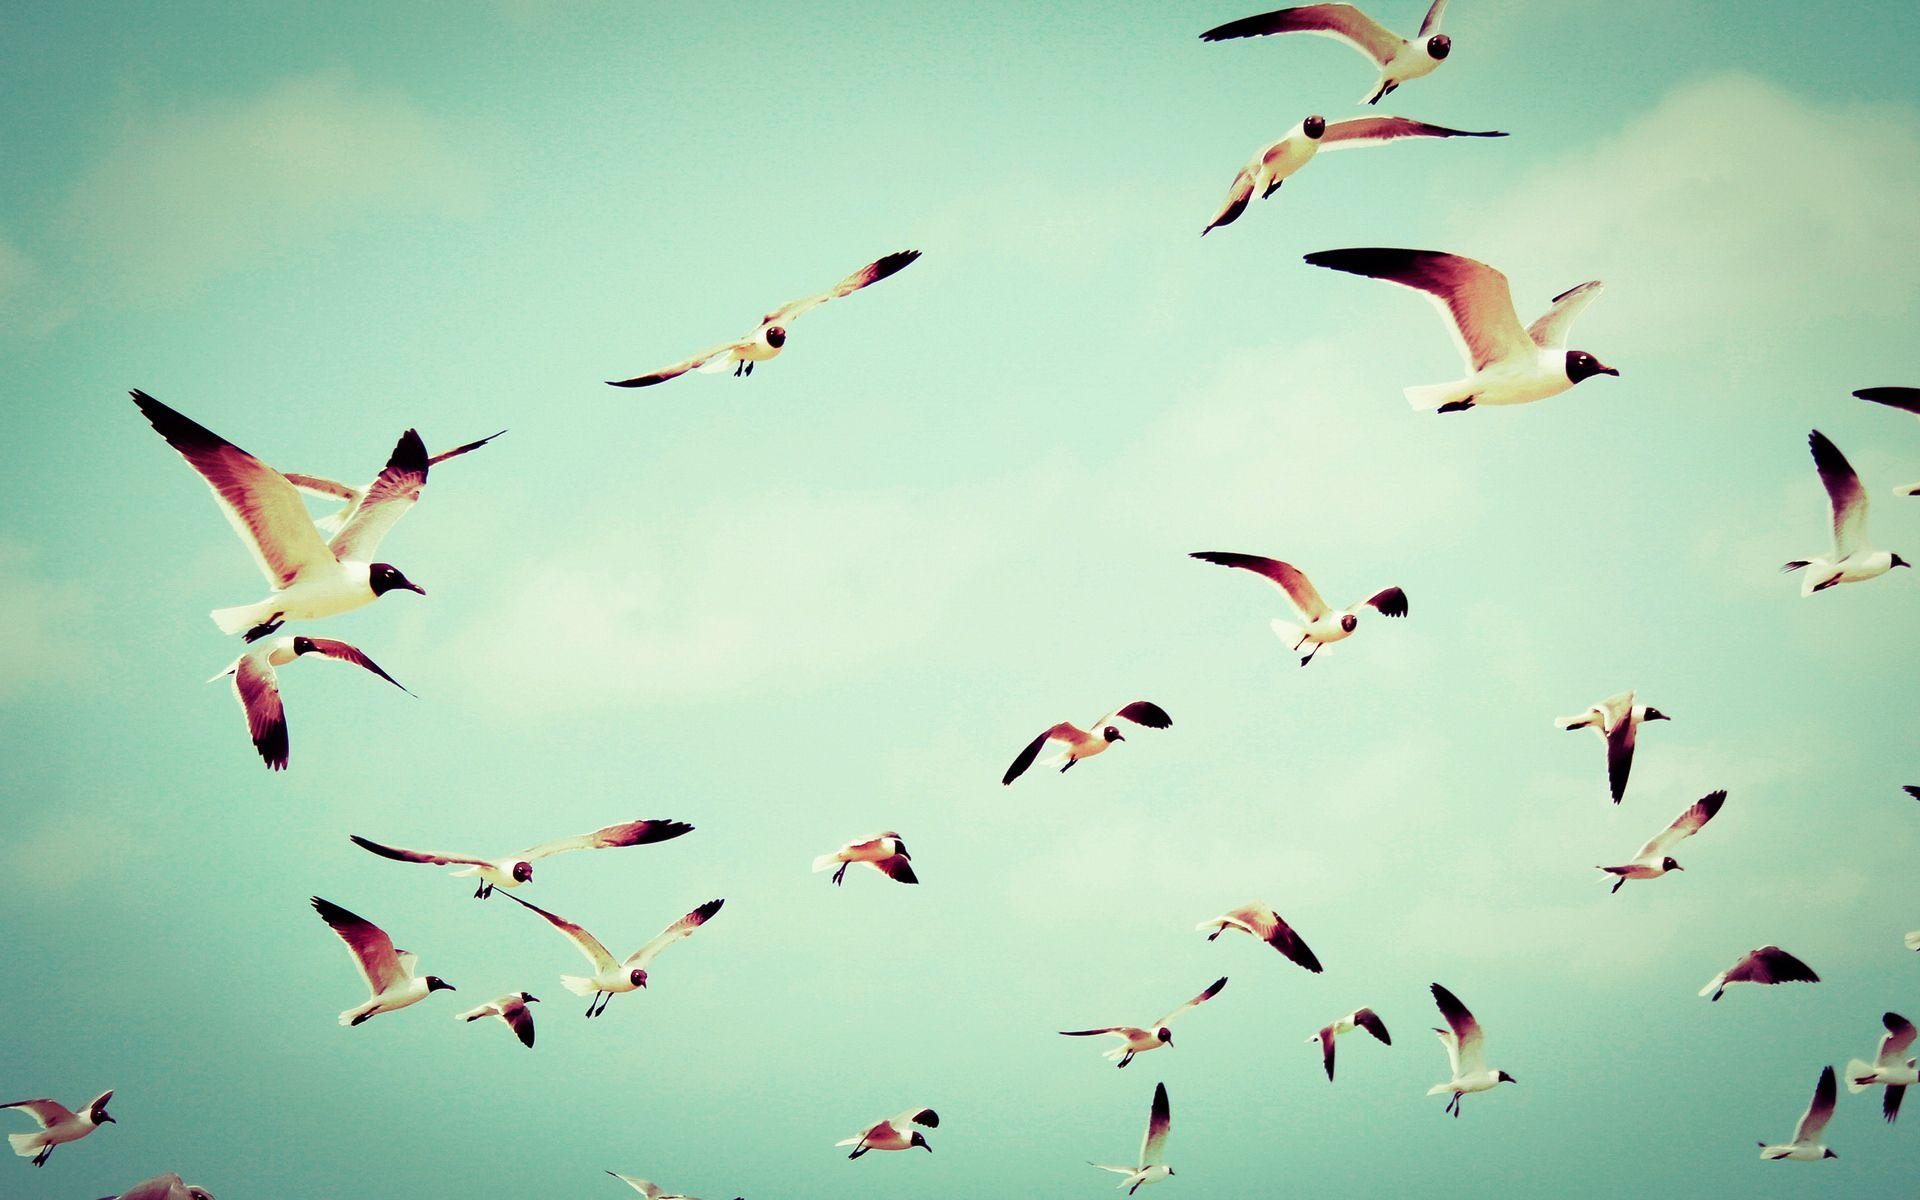 Flying Birds Wallpapers - Wallpaper Cave